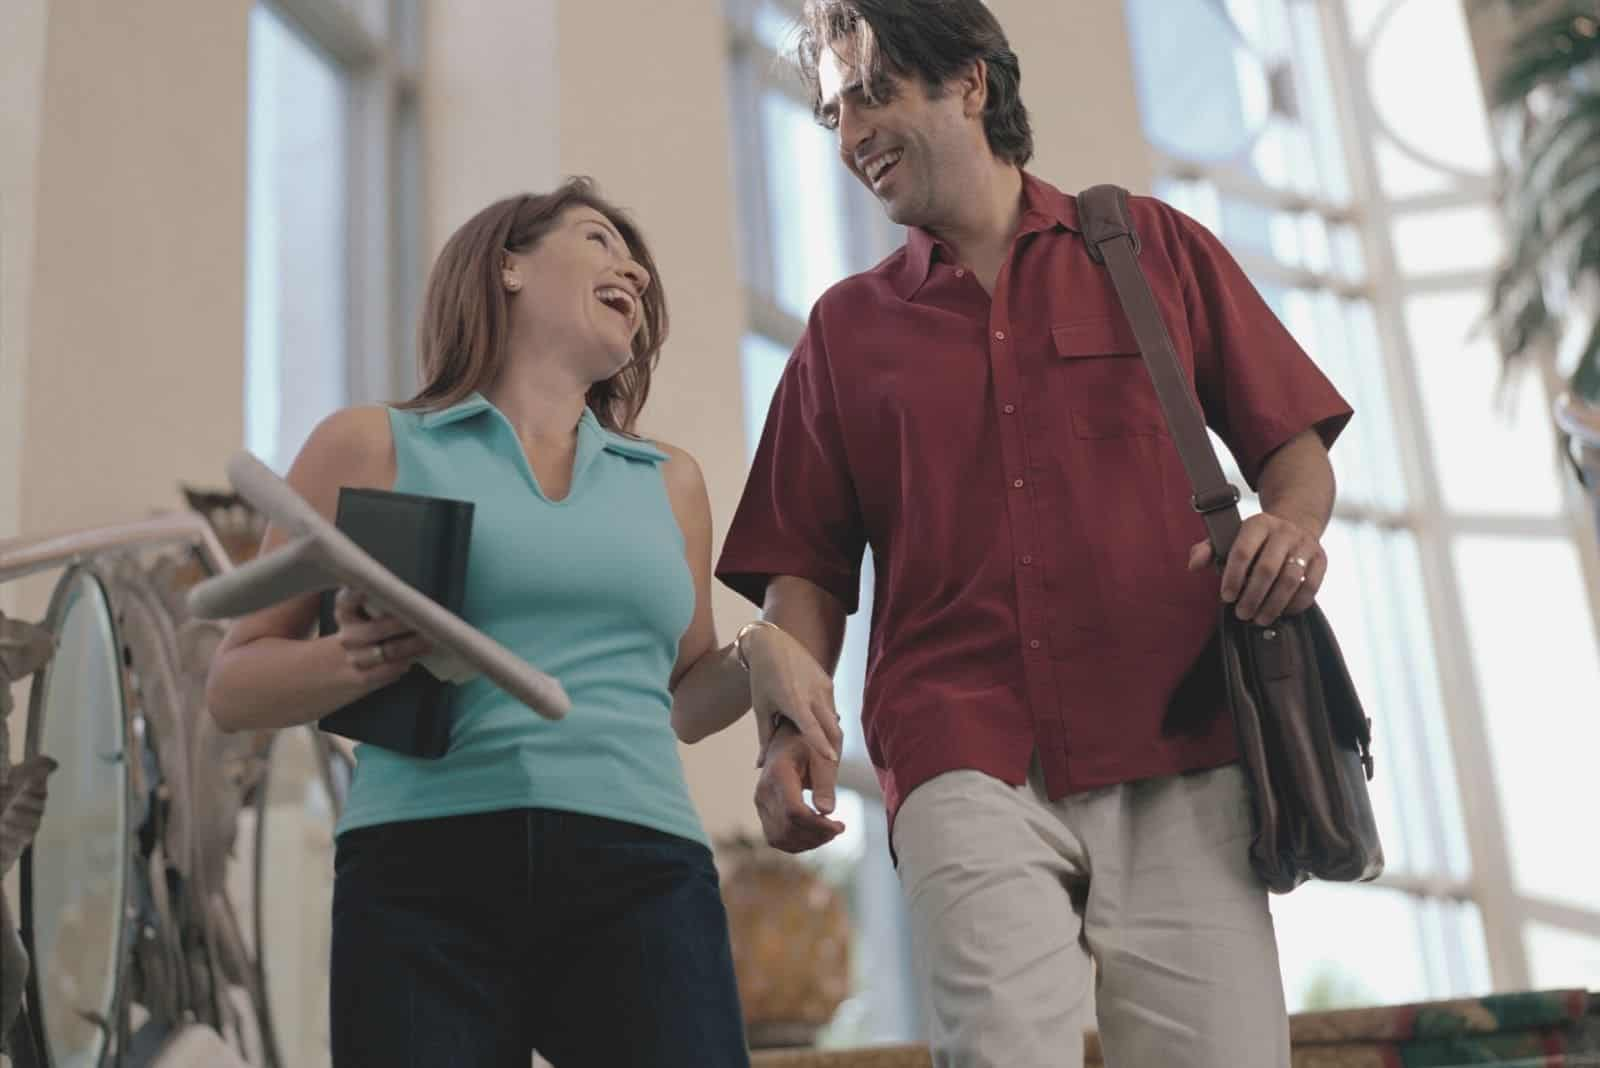 heterosexual couple laughing while walking down the stairs and bringing their stuffs